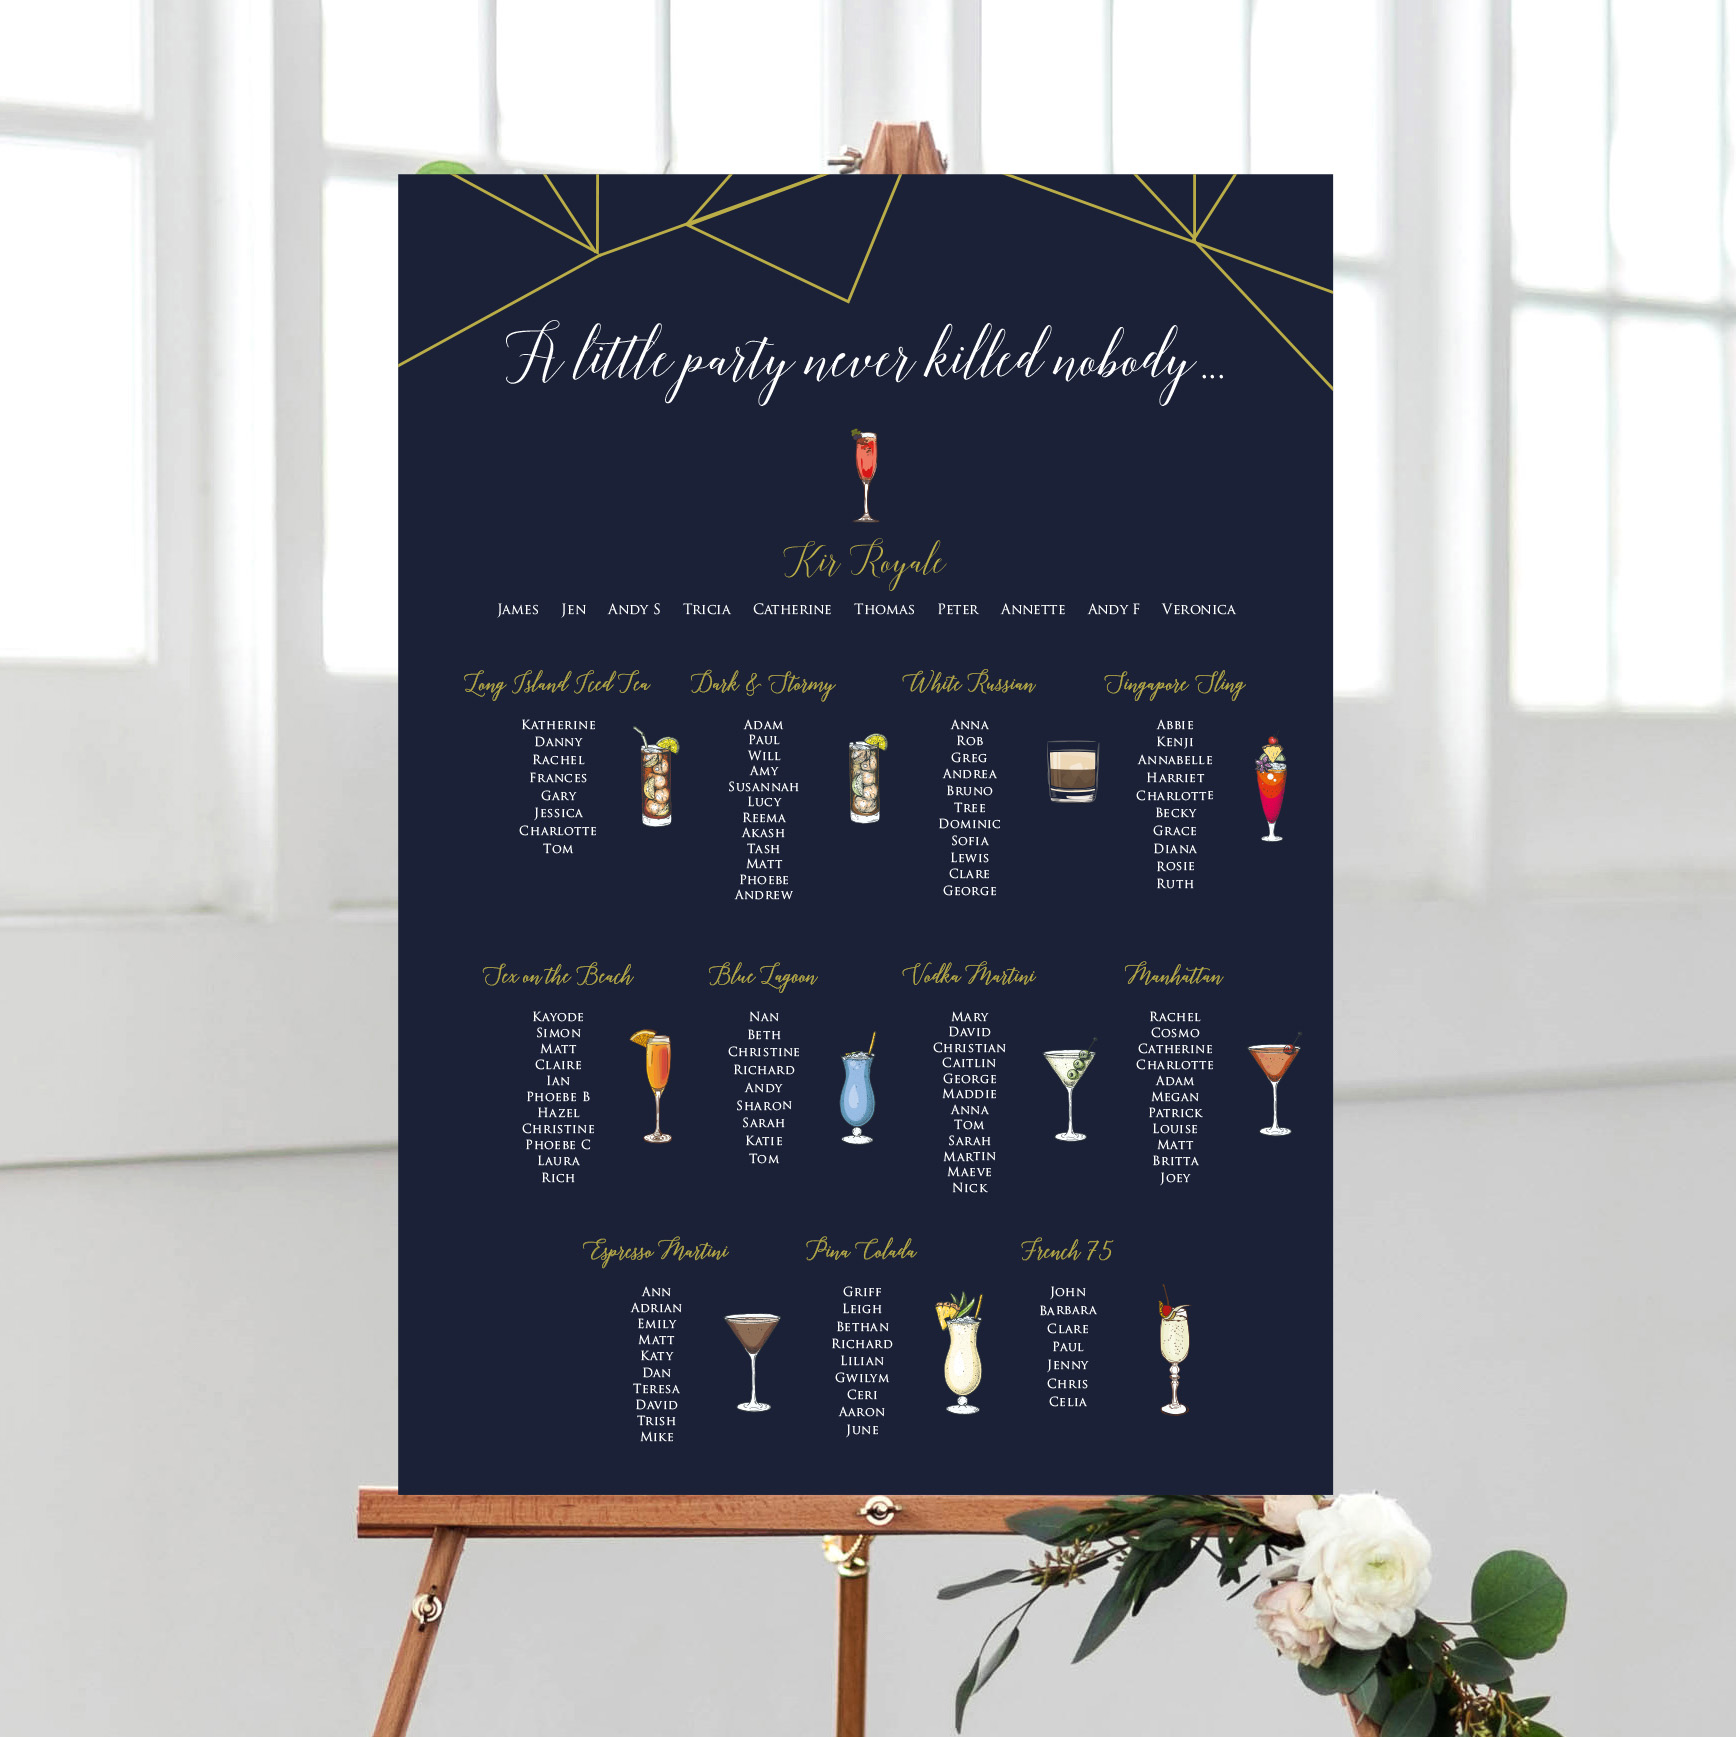 Cocktails Table plan for a Wedding or Special Occasion - By Rodo Creative